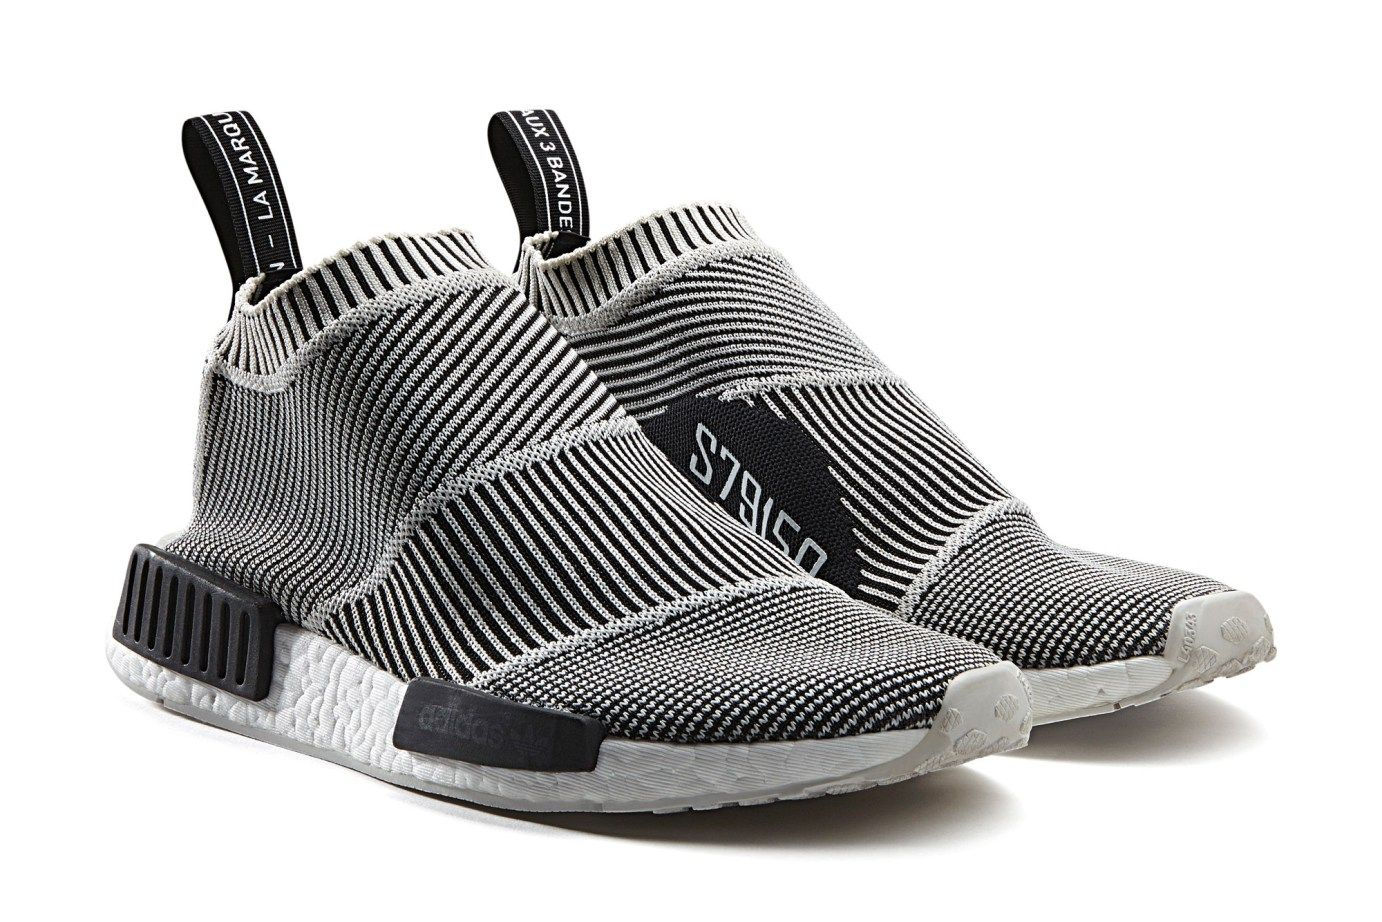 adidas NMD City Sock Release Date. adidas Originals Cit Sock Release Date.  The adidas NMD runner City Sock features a Primeknit sock-like upper for  Spring